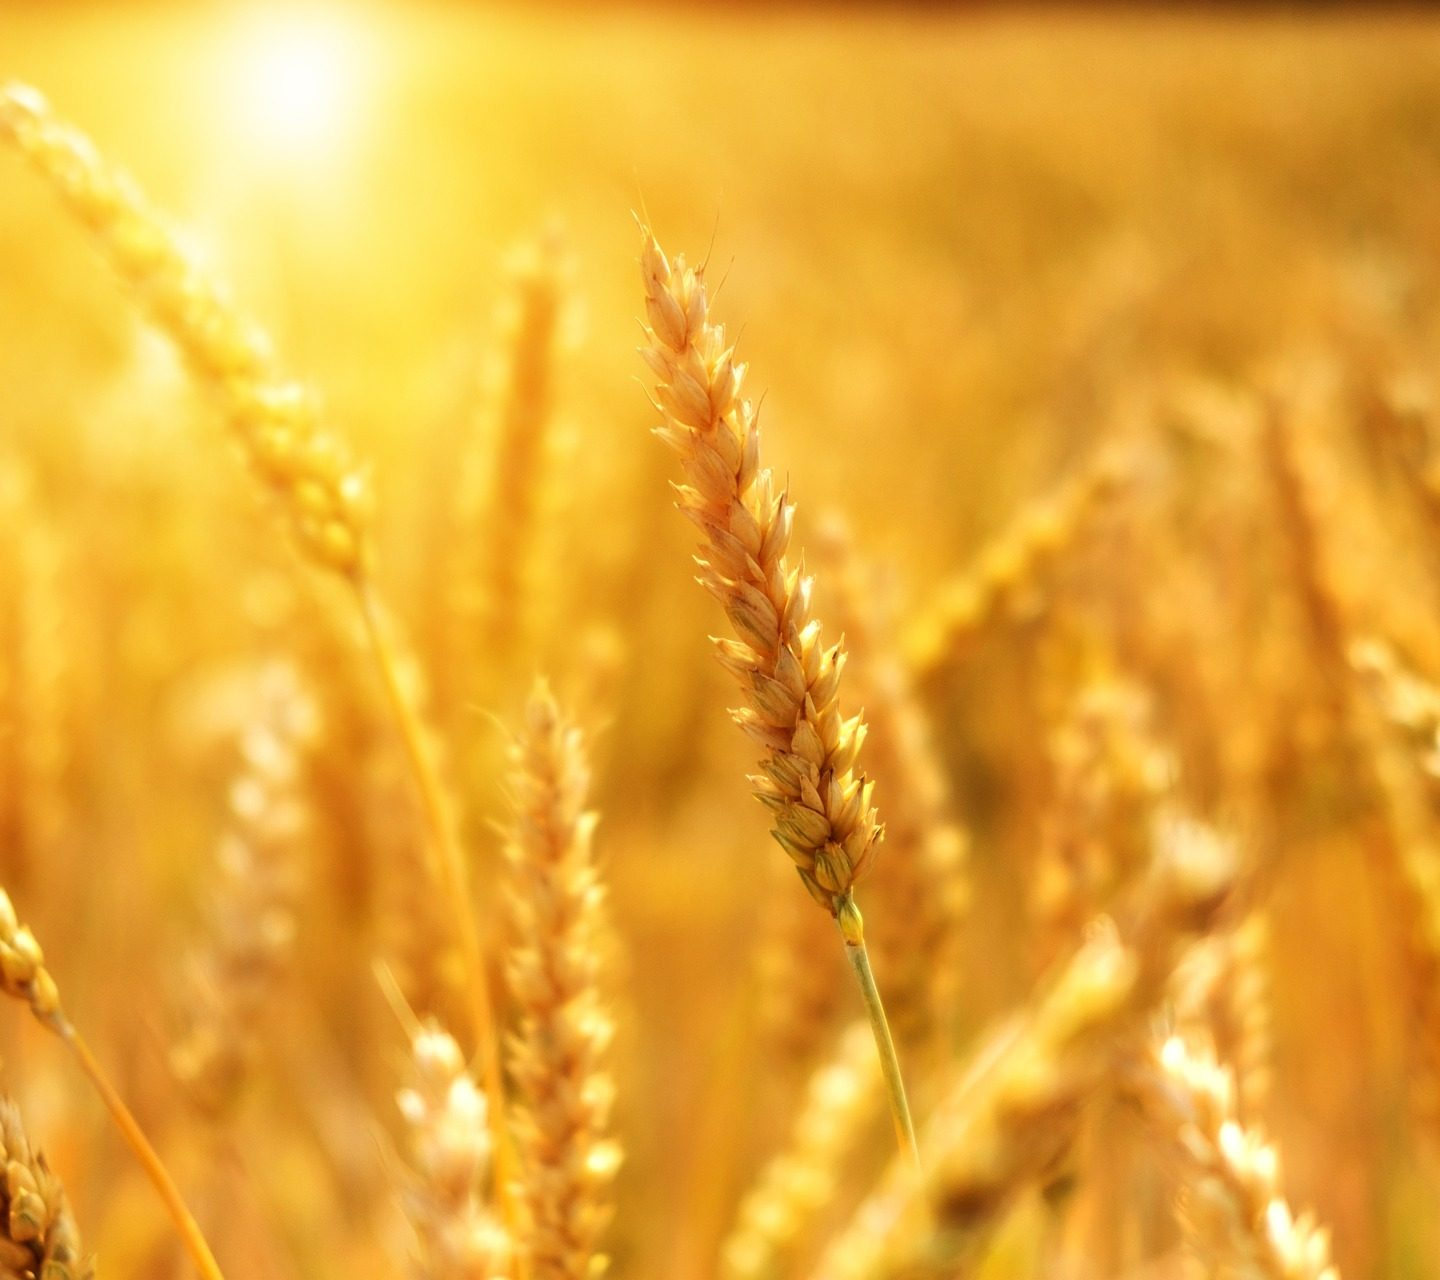 Rain-resistant wheat developed using genome editing